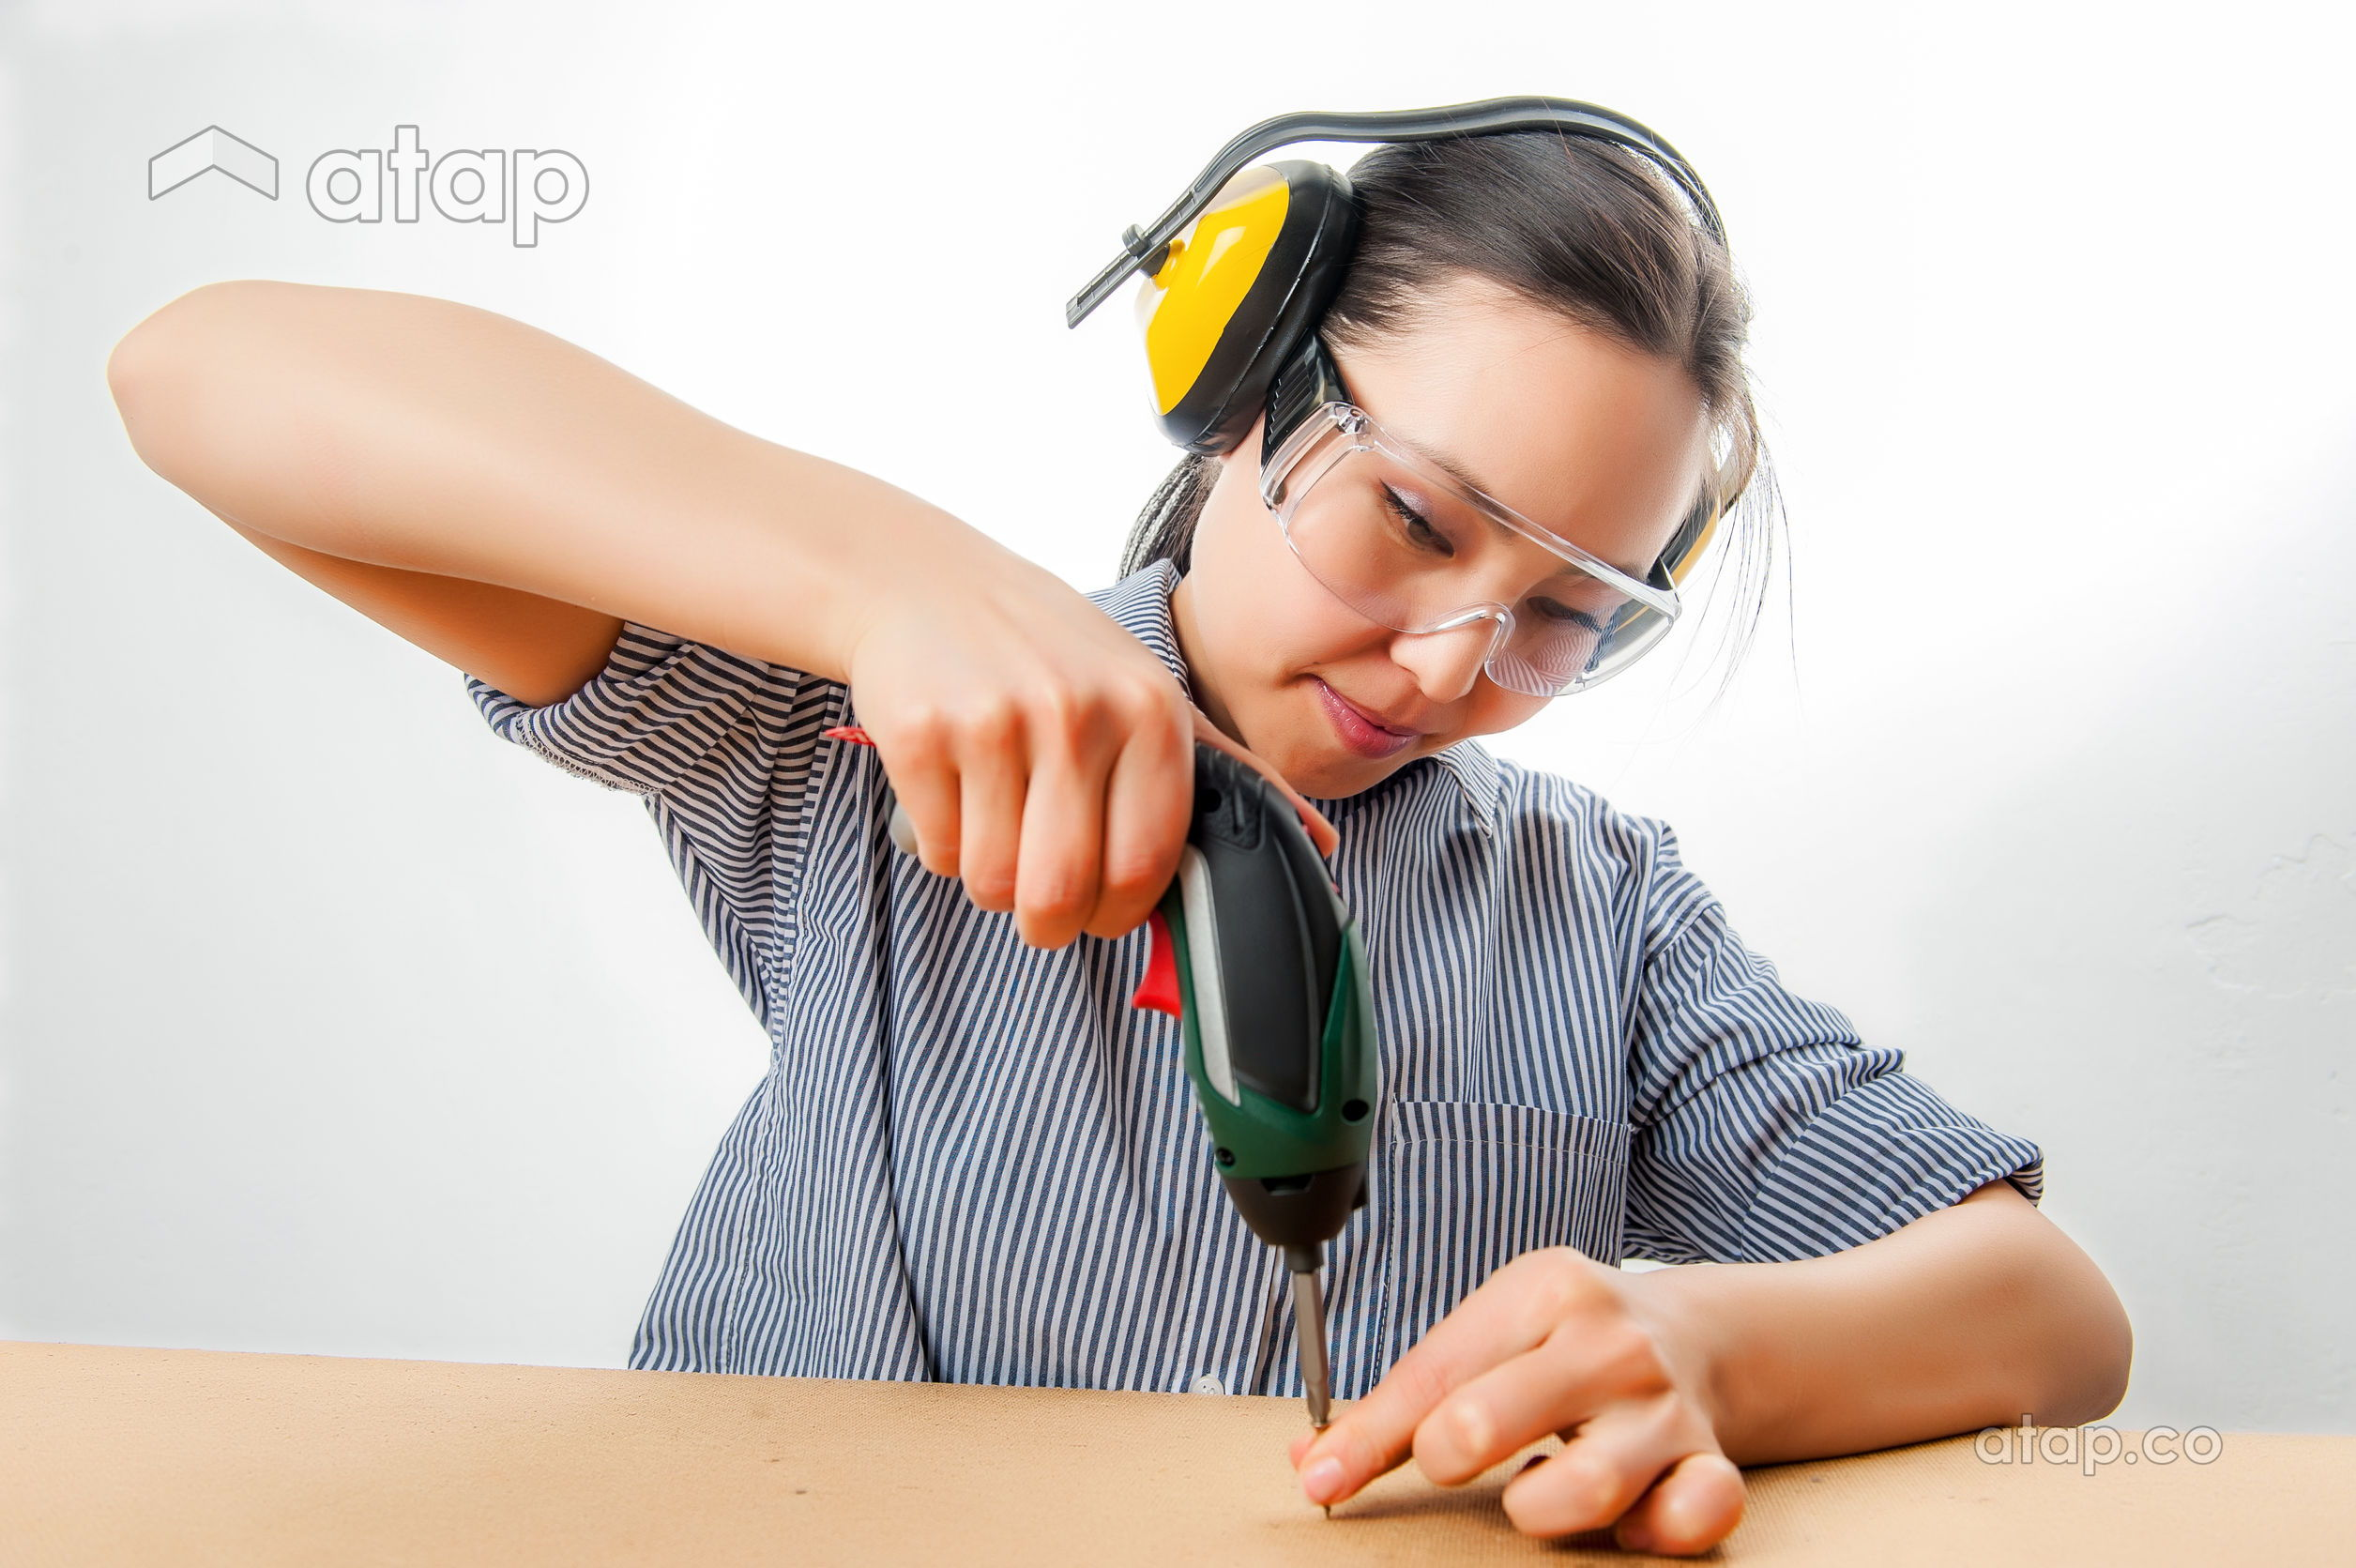 woman using drill